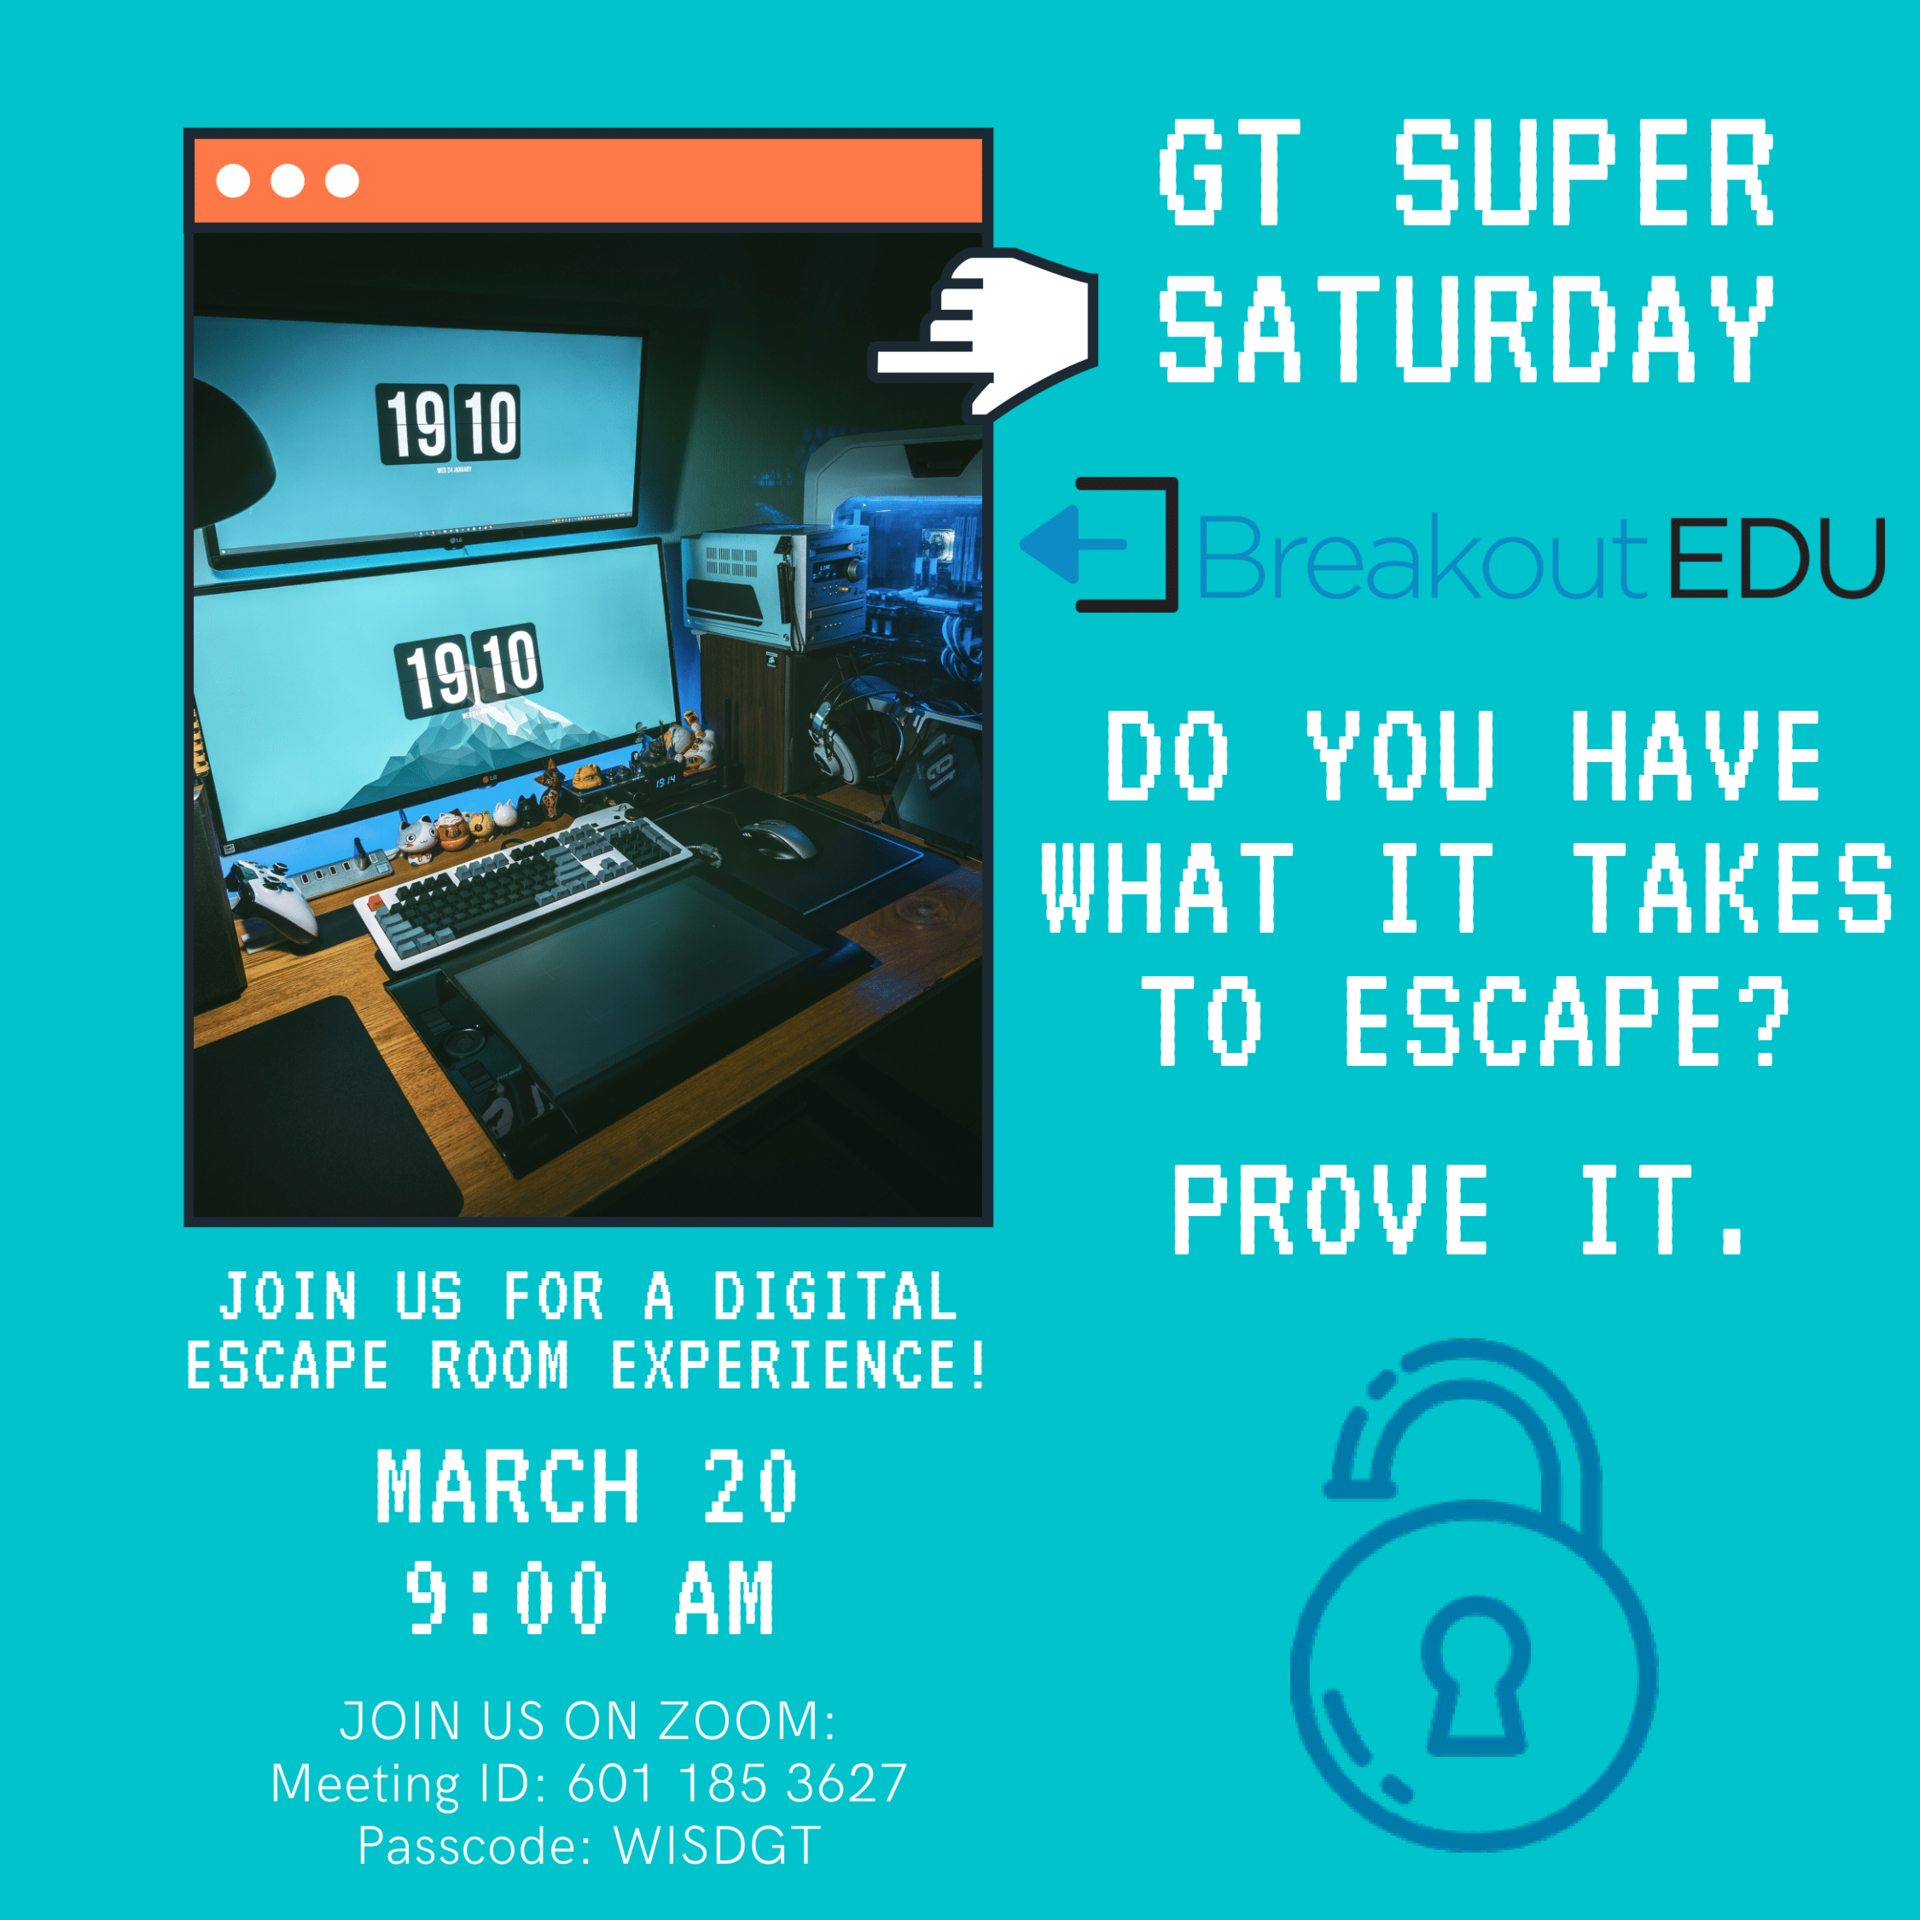 Virtual GT Super Saturday on March 20 at 9